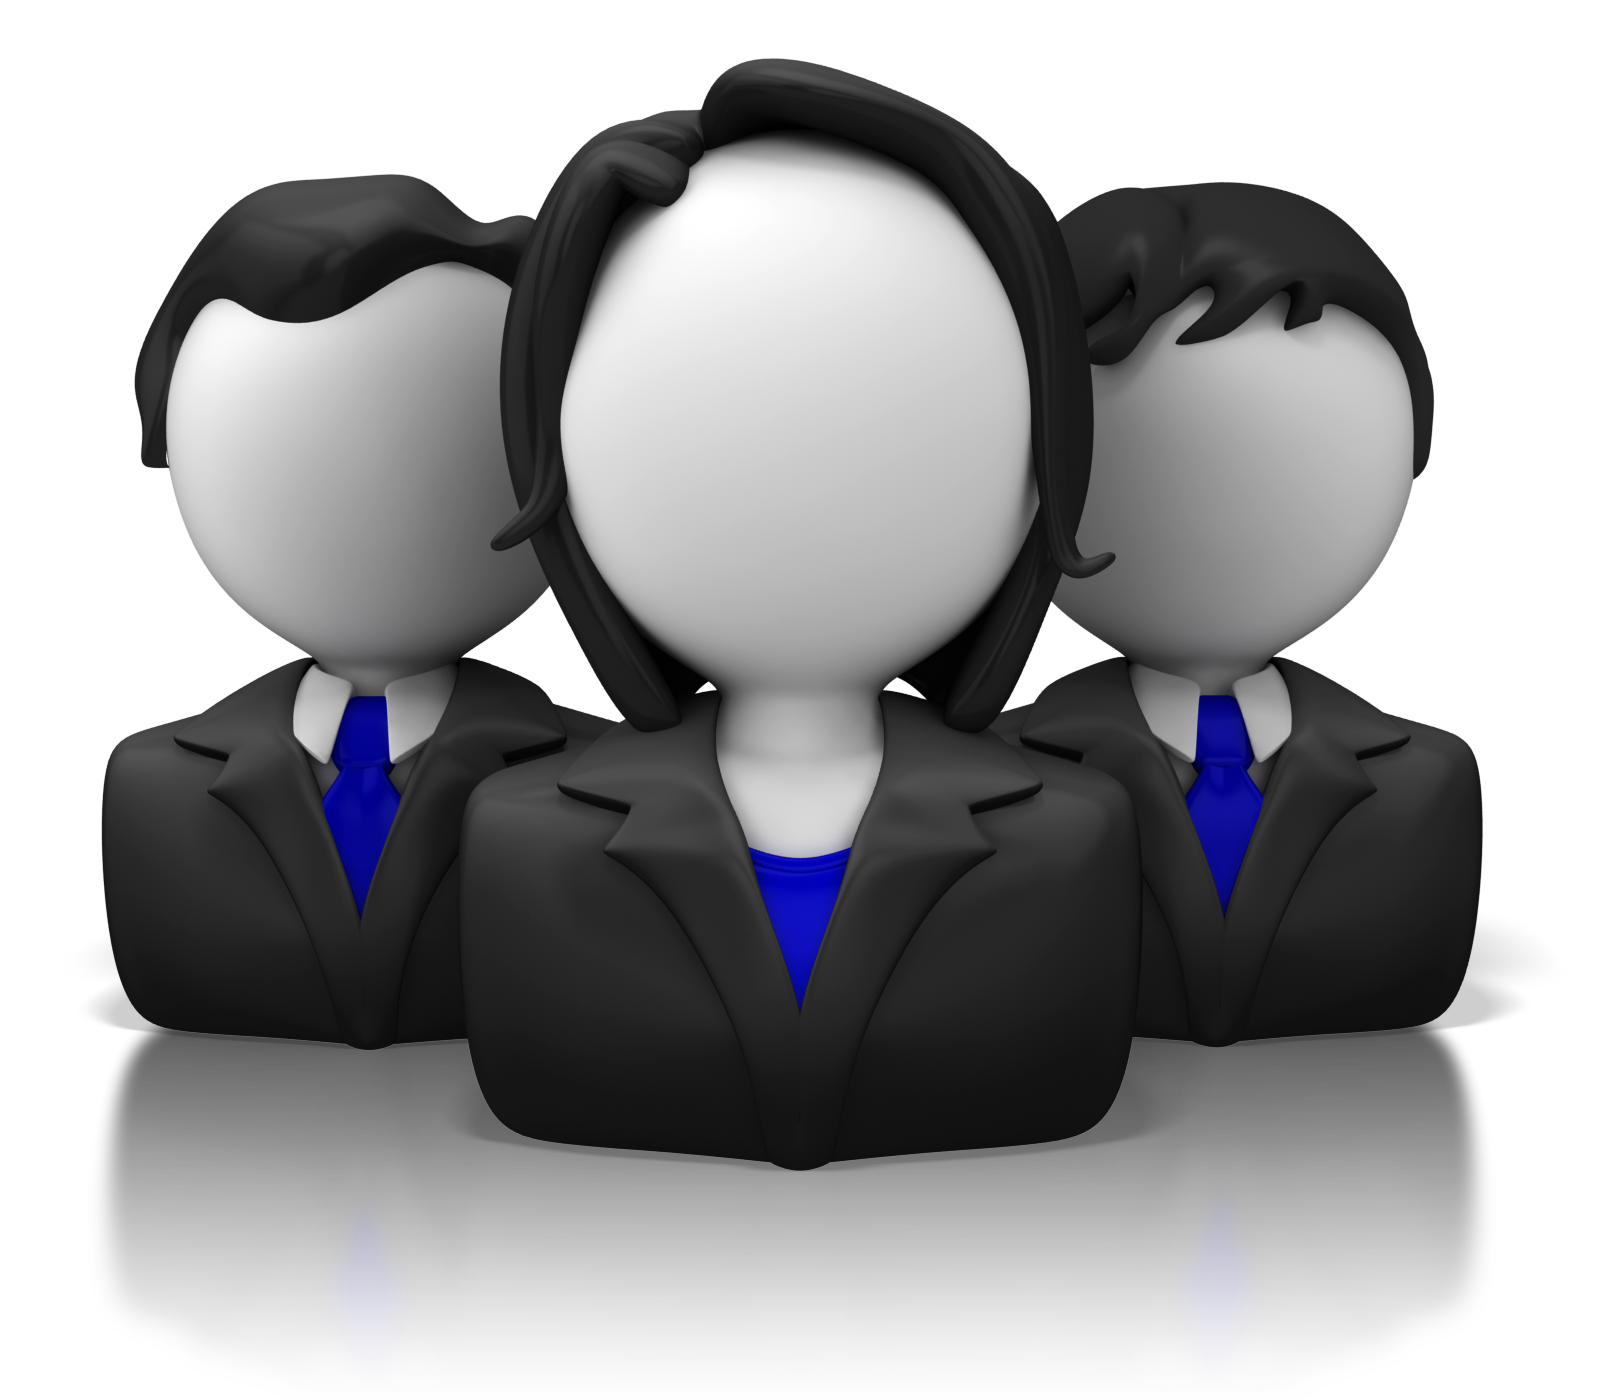 Business icon group clr. Computers clipart team